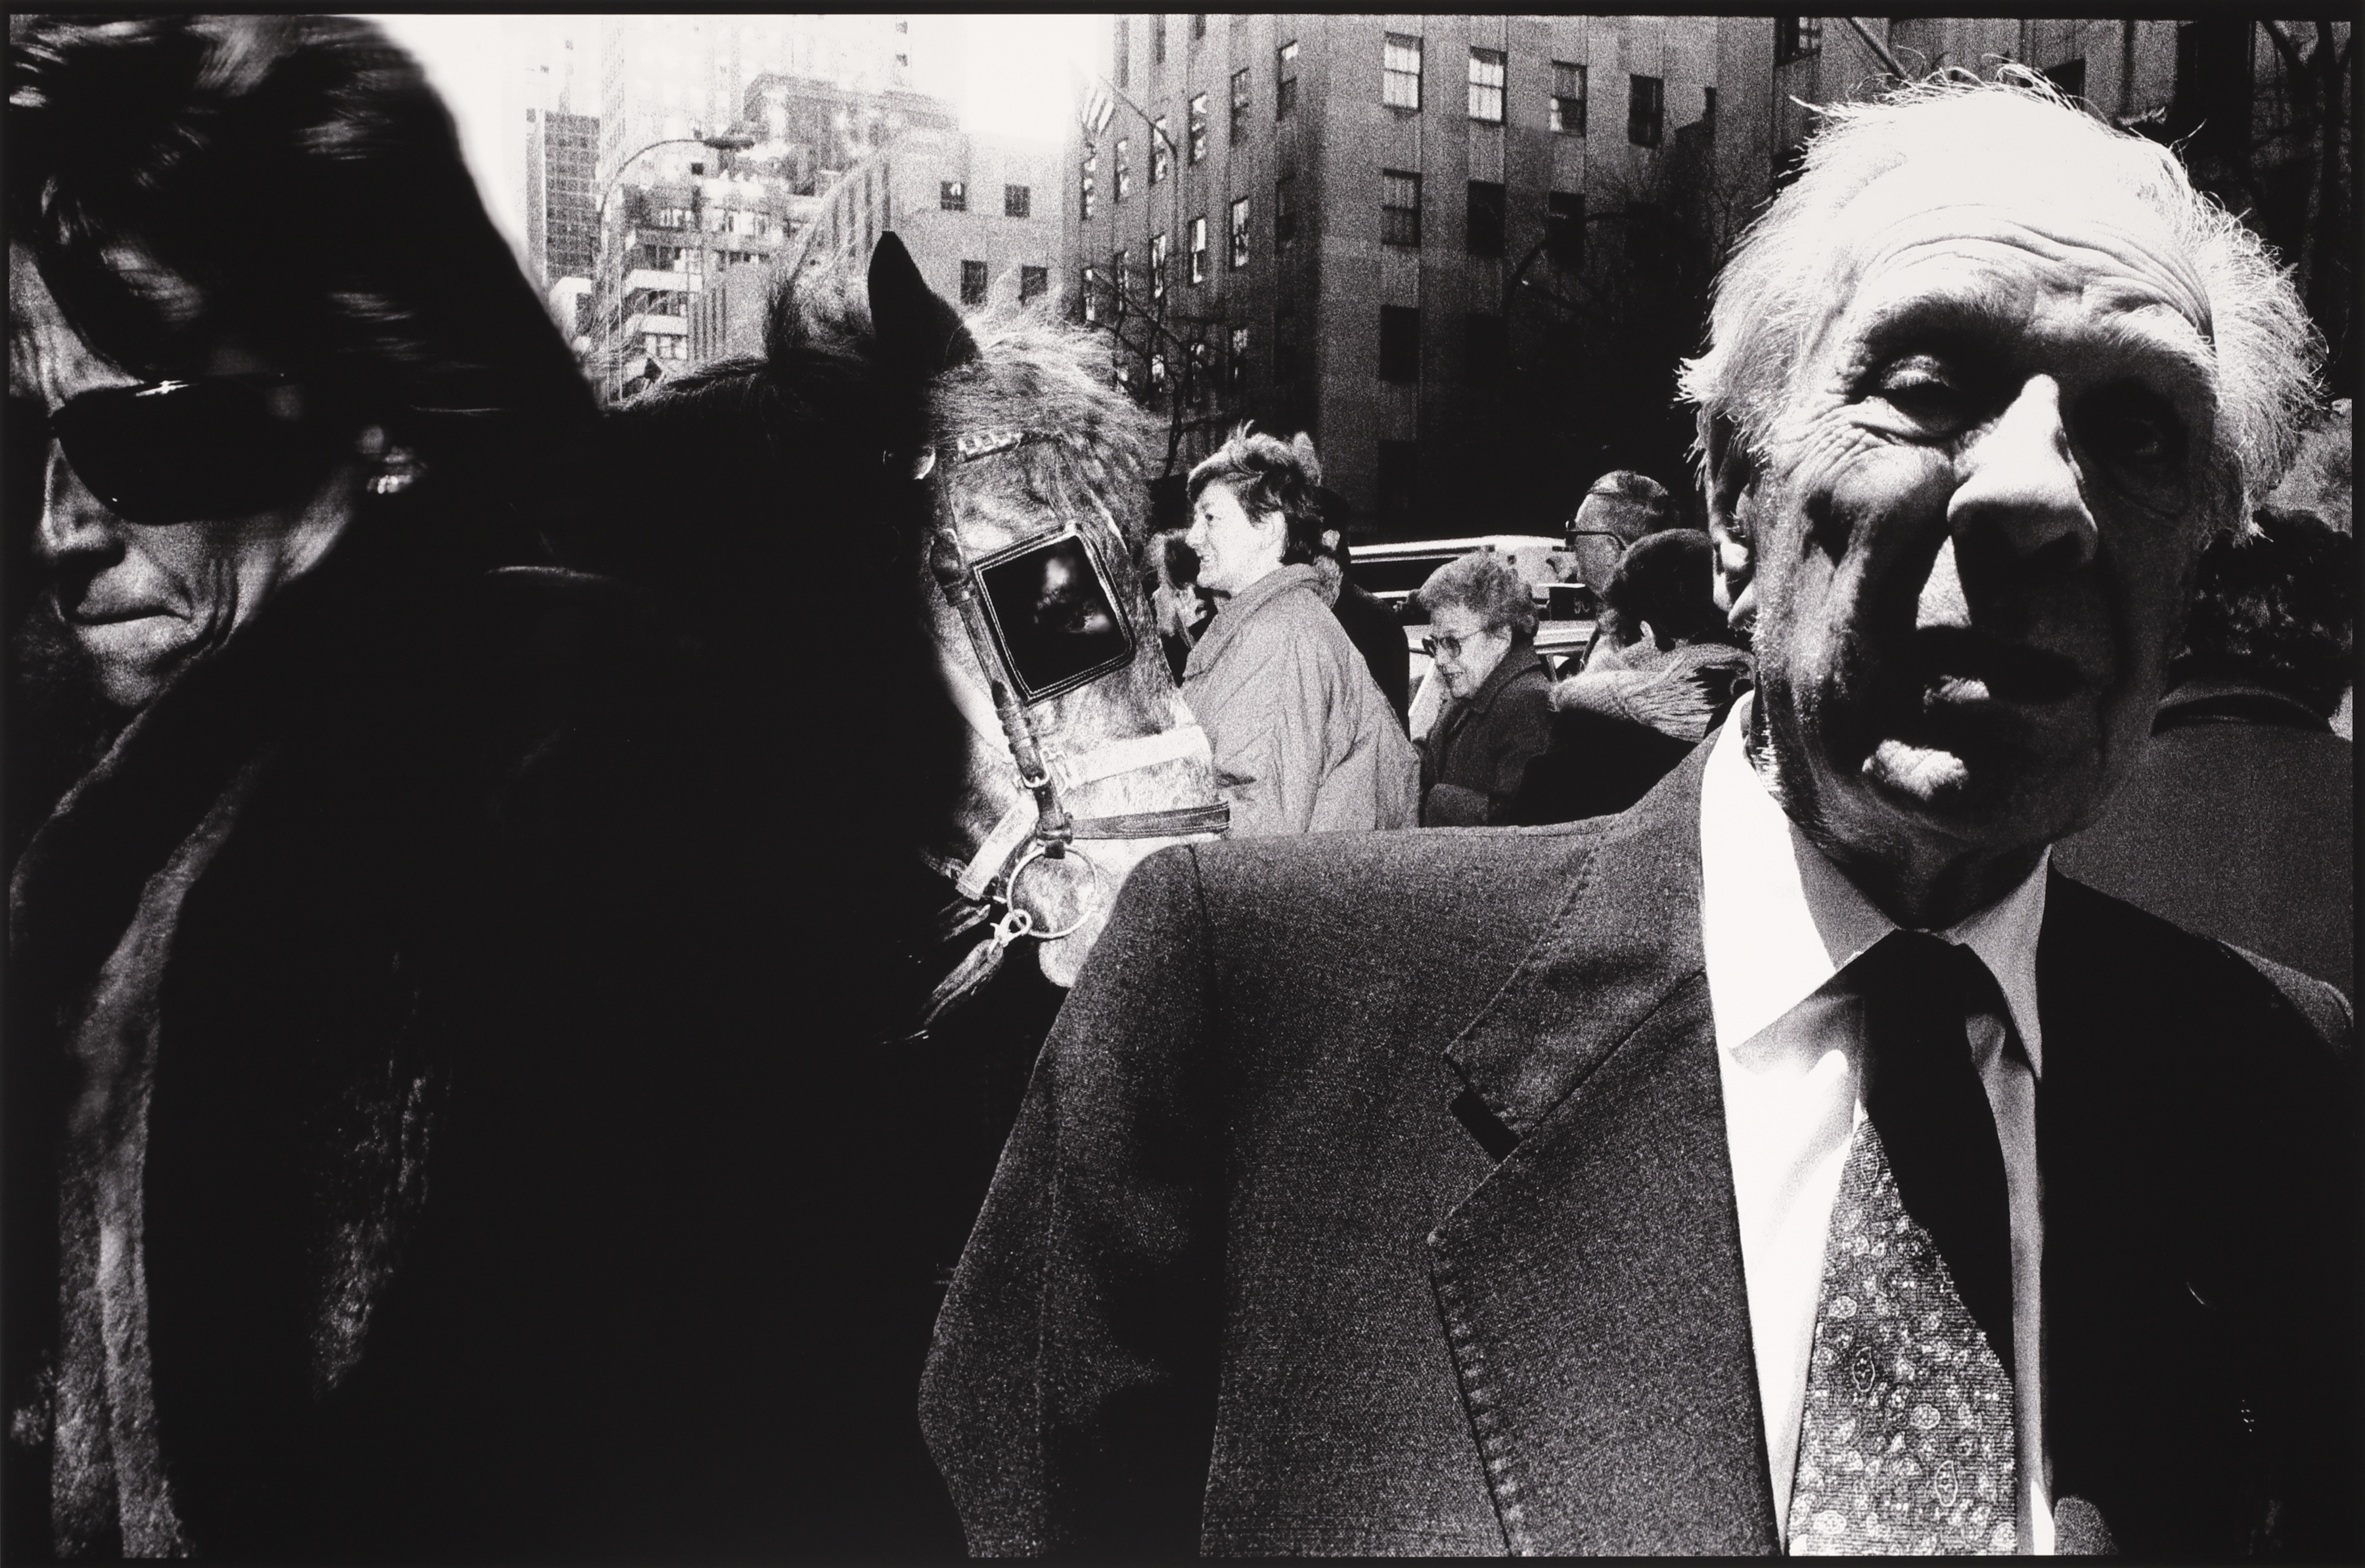 Borges on 5th Avenue (New York, New York, USA)